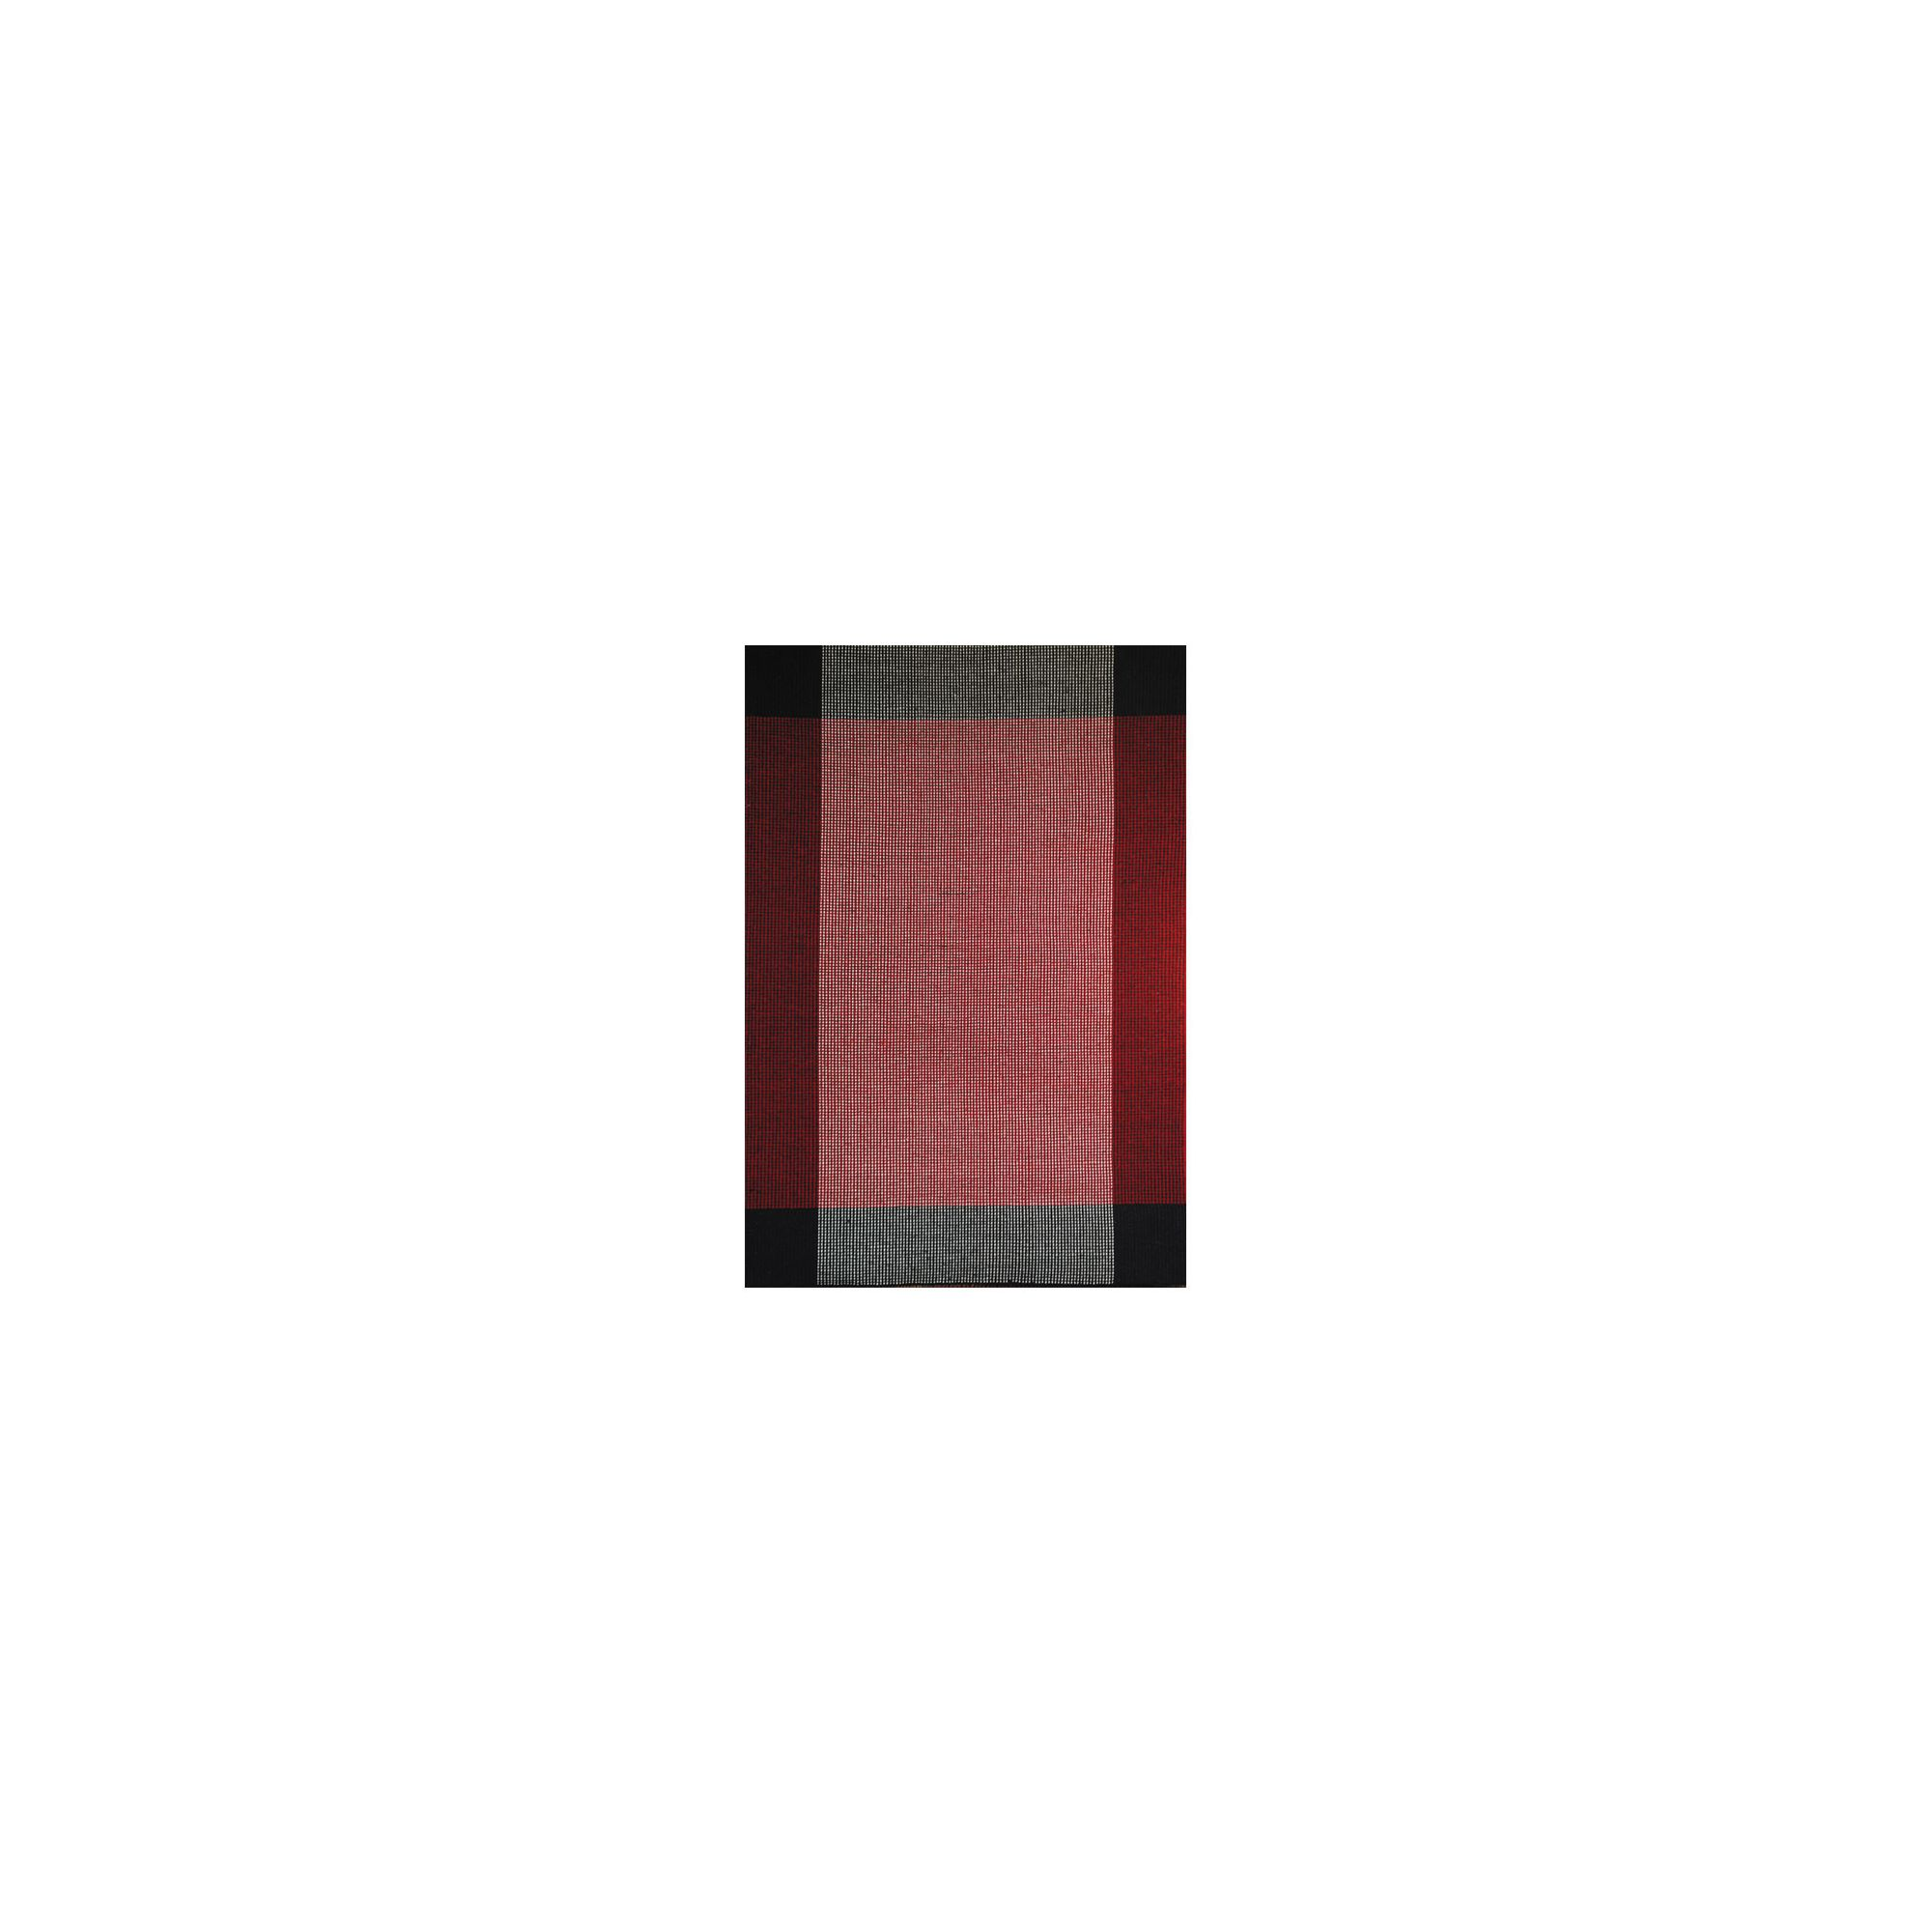 InRUGS Ellora Black/Red Woven Rug - 230cm x 160cm (7 ft 6.5 in x 5 ft 3 in)